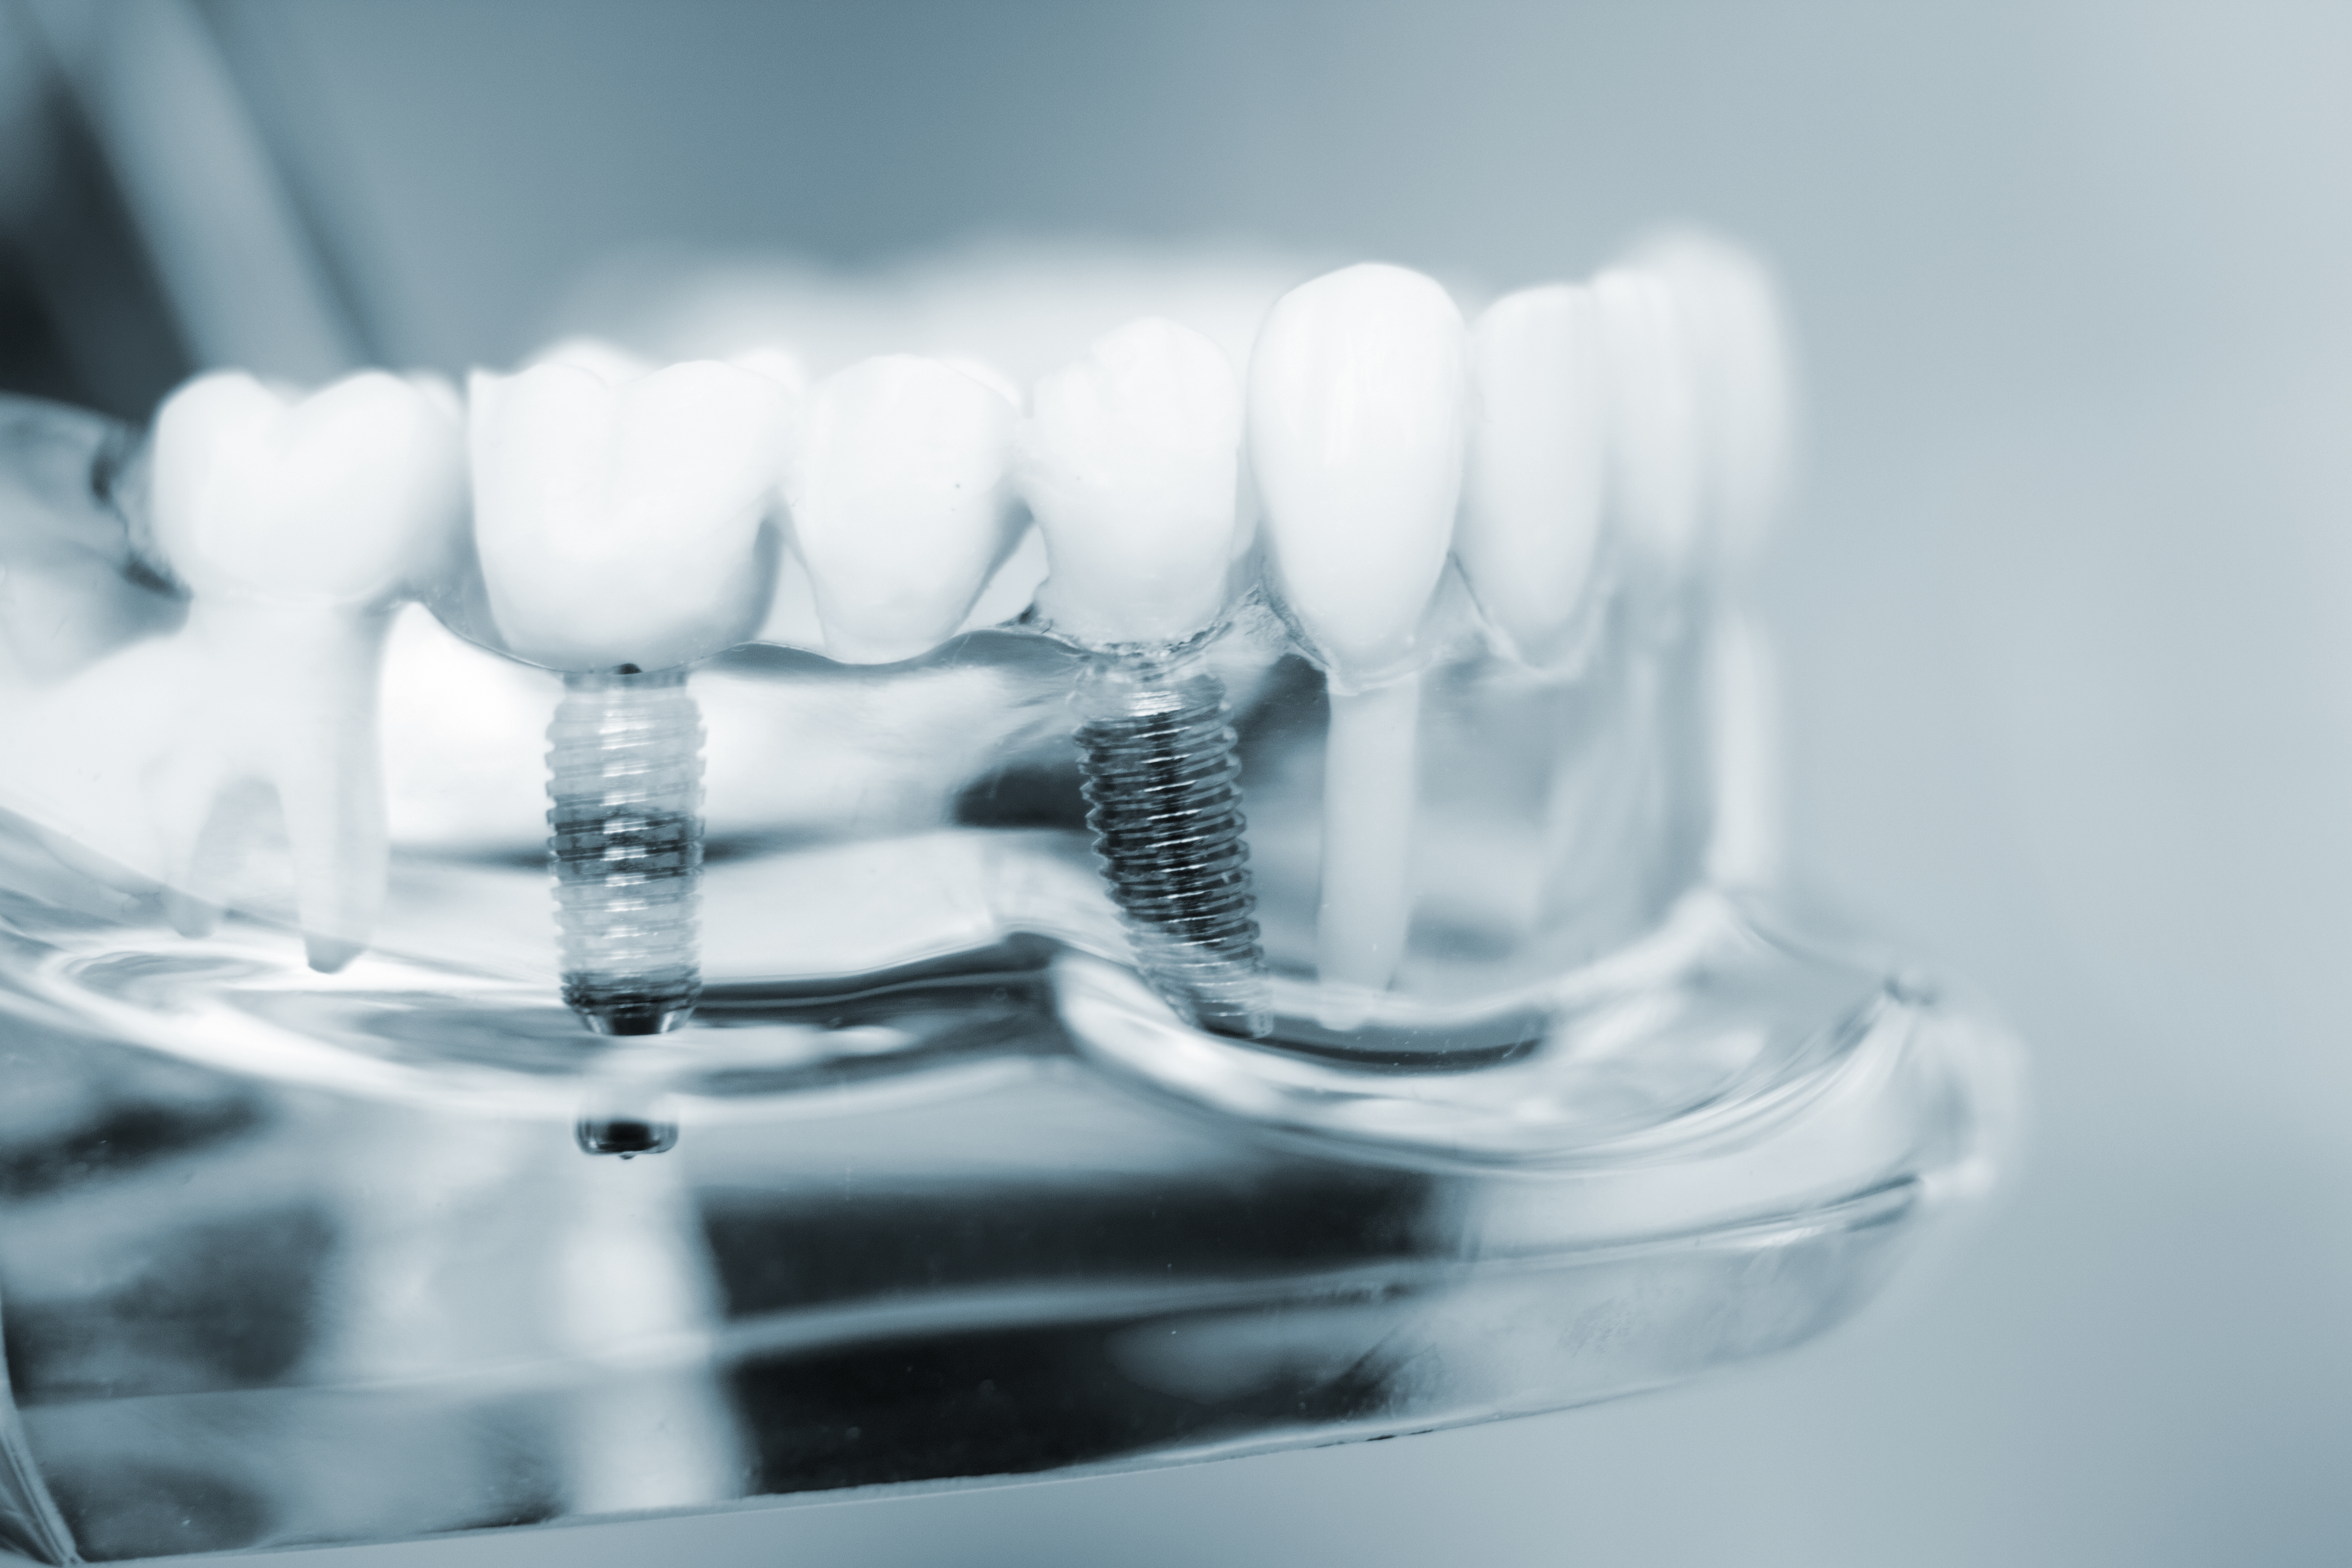 Image of Dental Implants